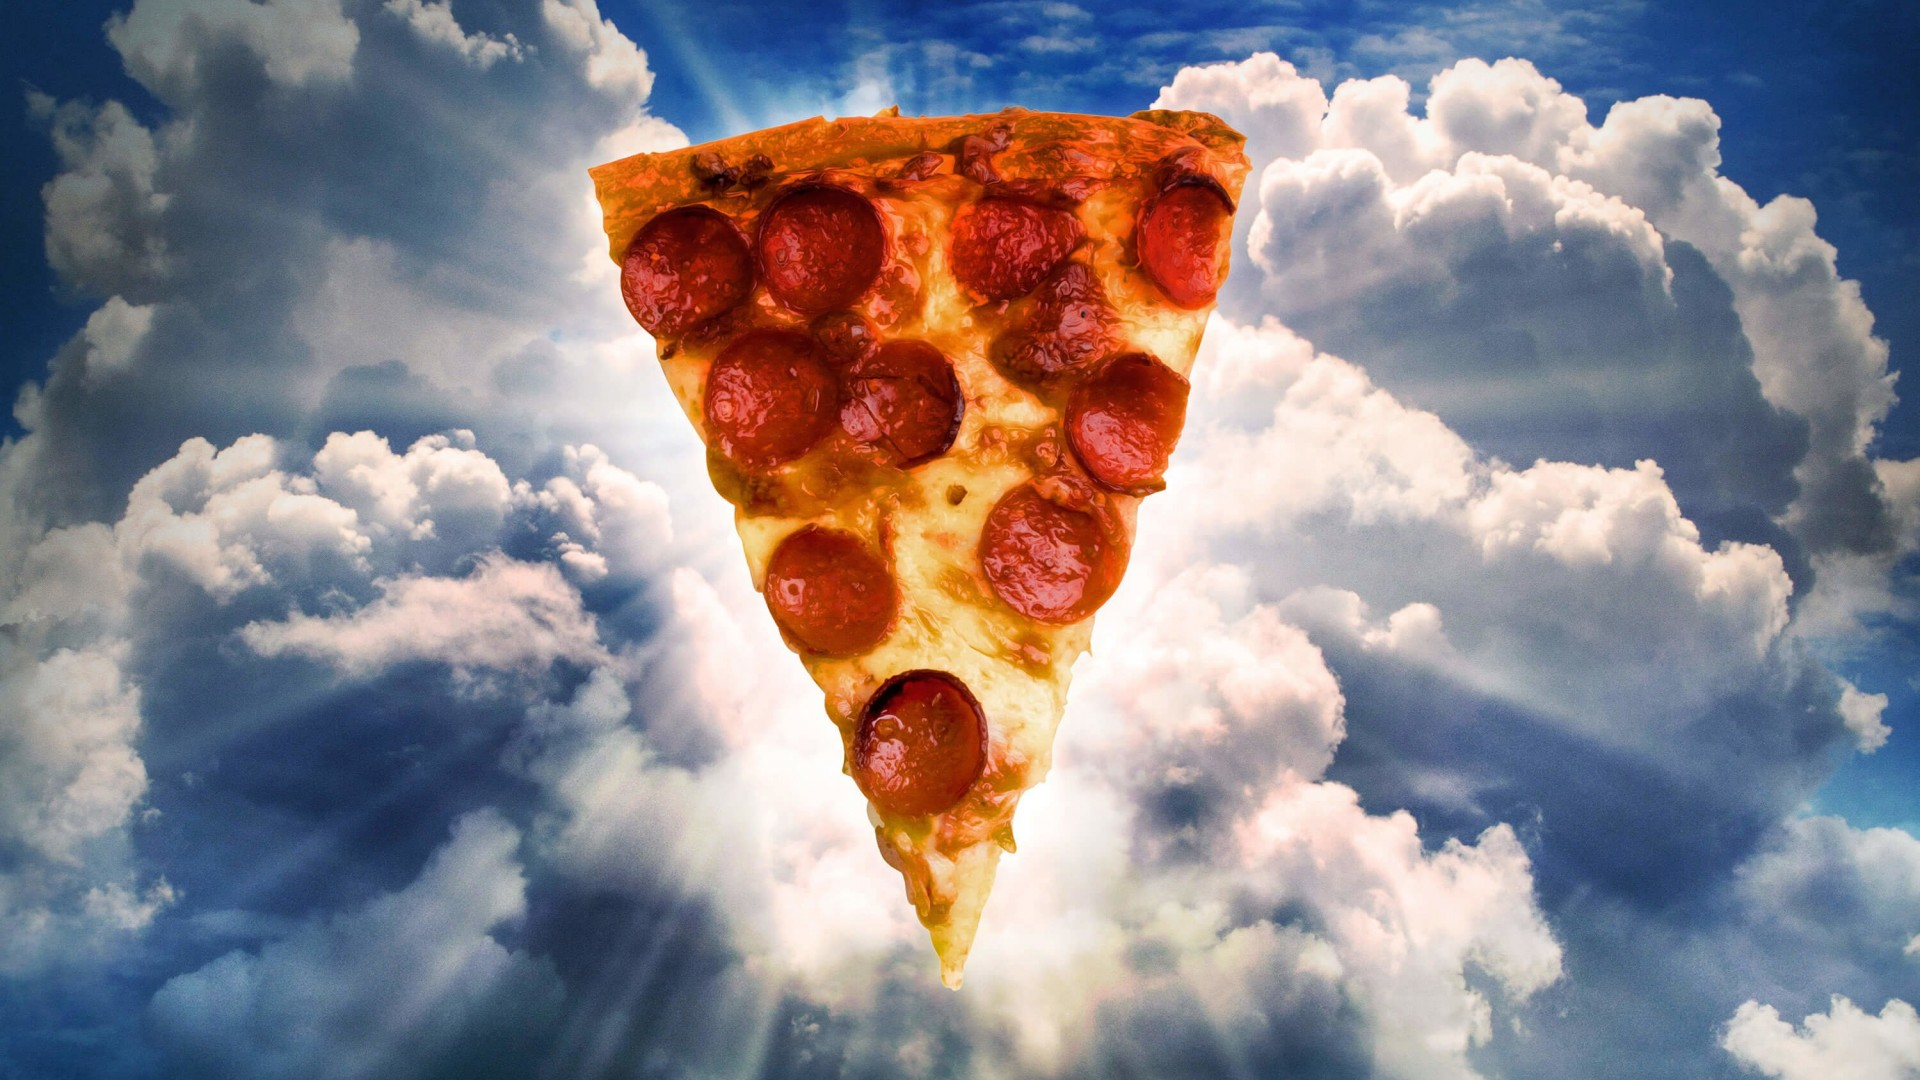 Holy Pizza Wallpaper for Desktop 1920x1080